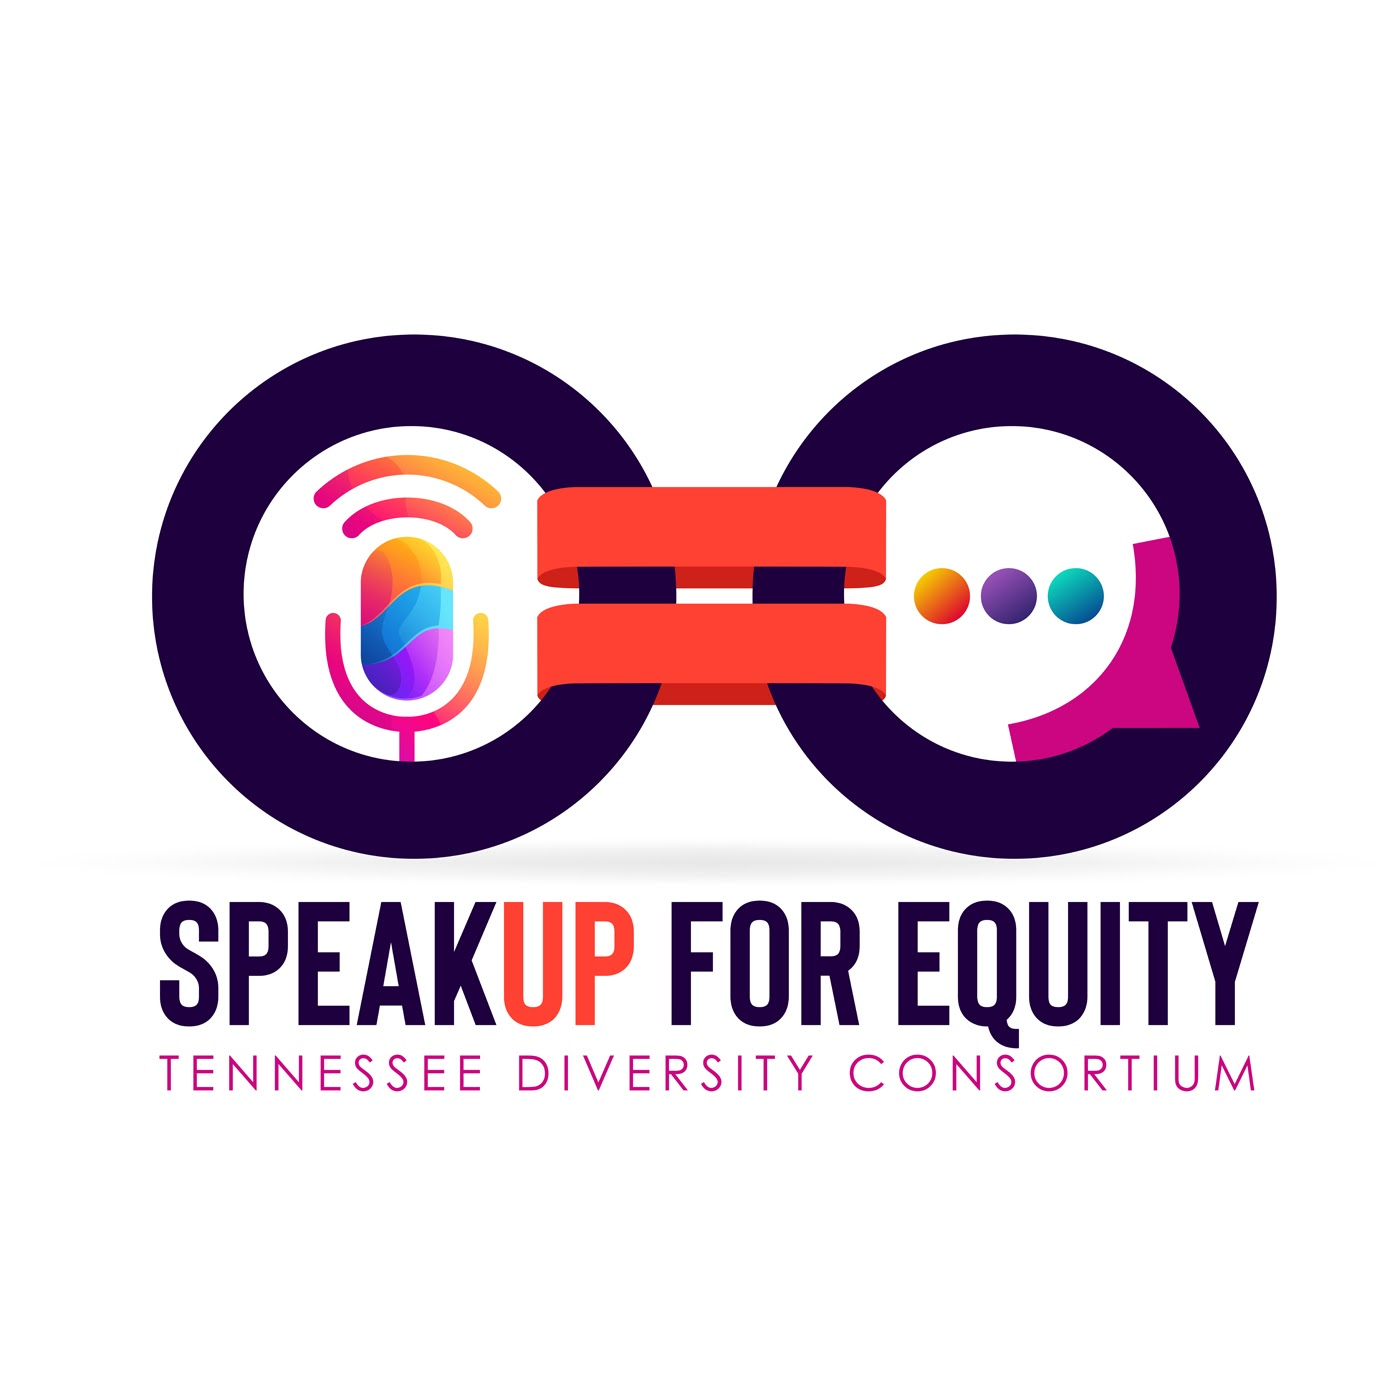 Speak Up for Equity - Tennessee Diversity Consortium